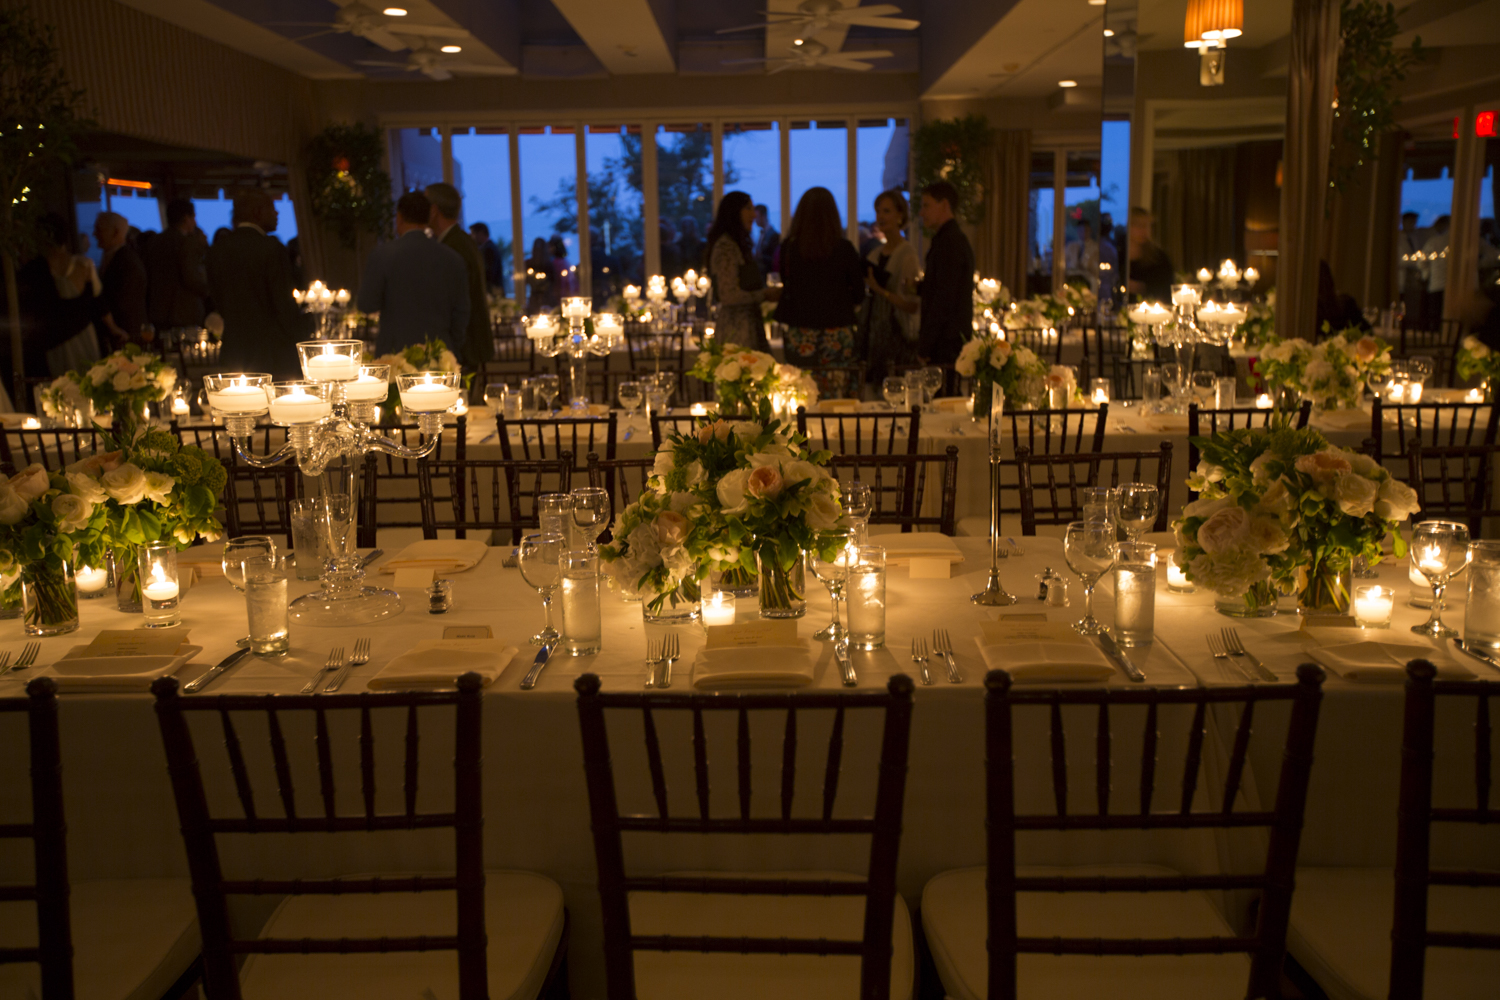 Guests were treated to a custom menu and seated dinner.